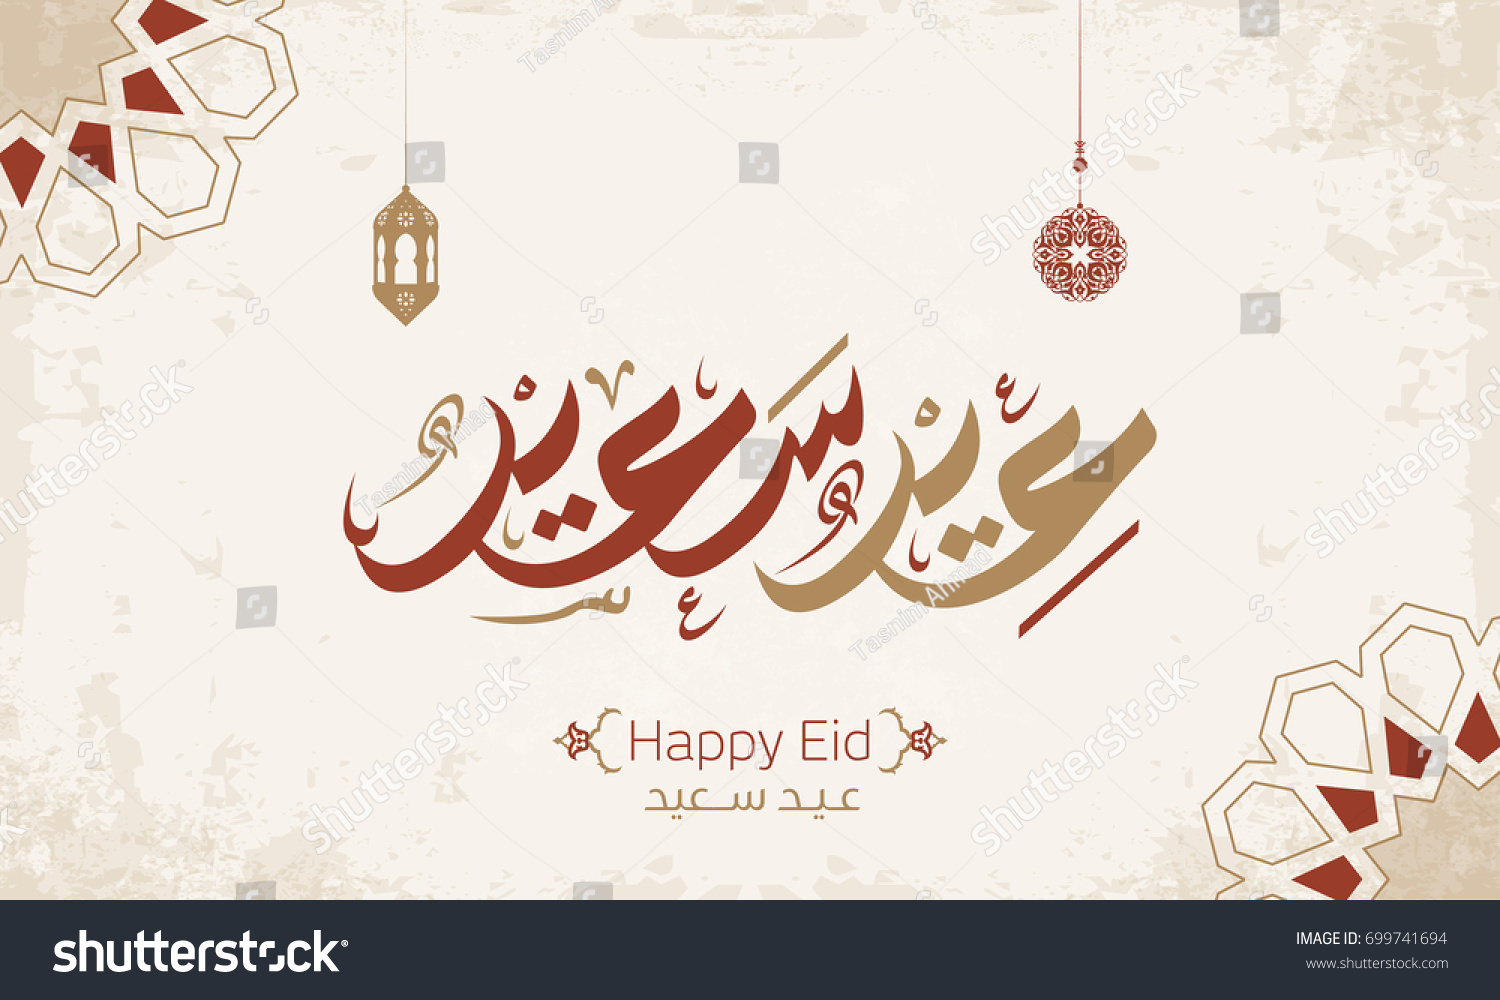 Happy Eid Greeting Card In Arabic Calligraphy Style 2 Ez Canvas